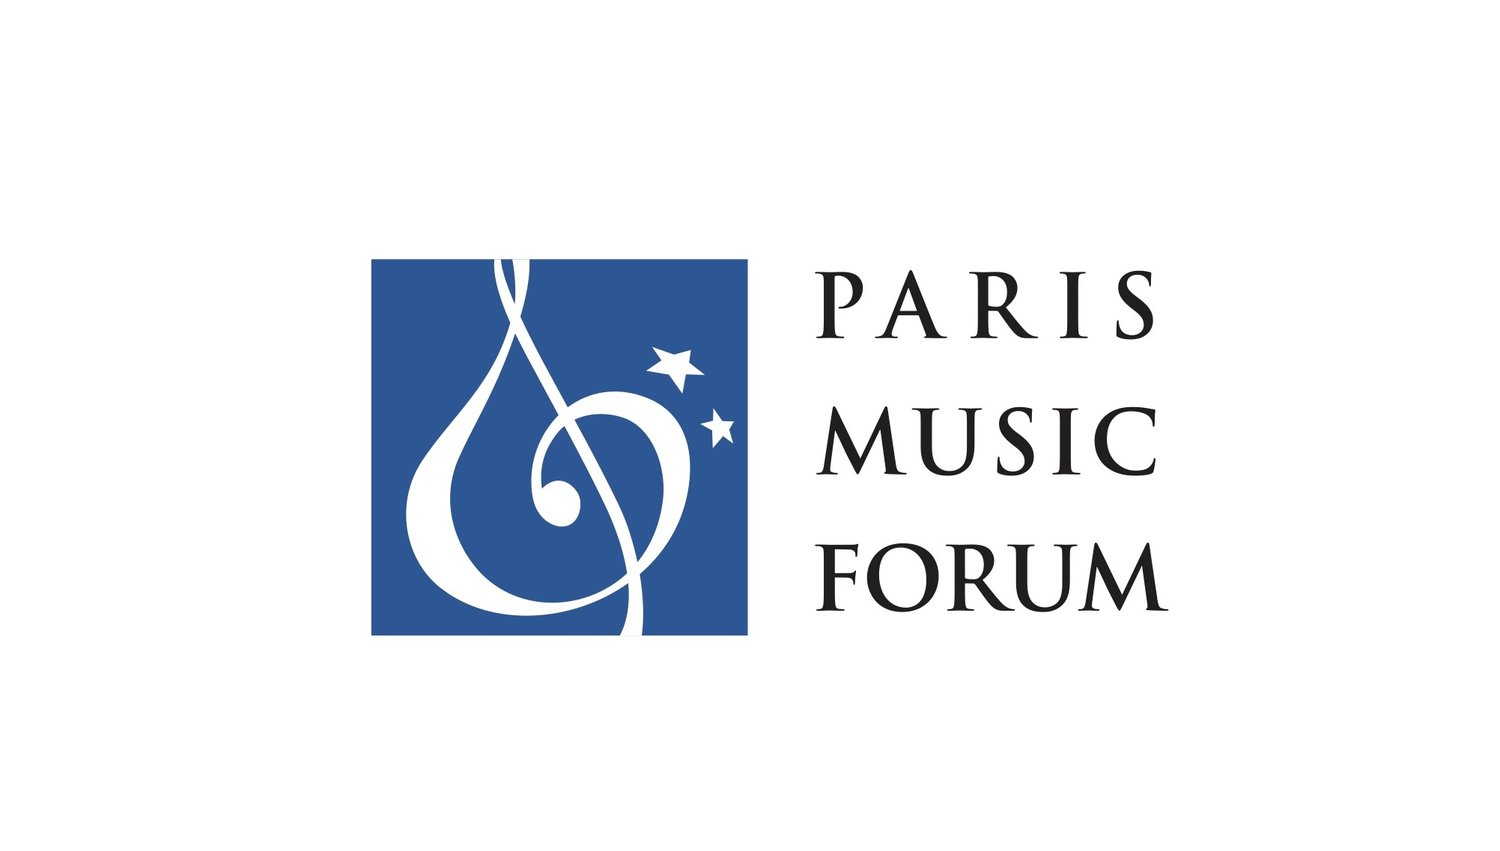 Paris Music Forum